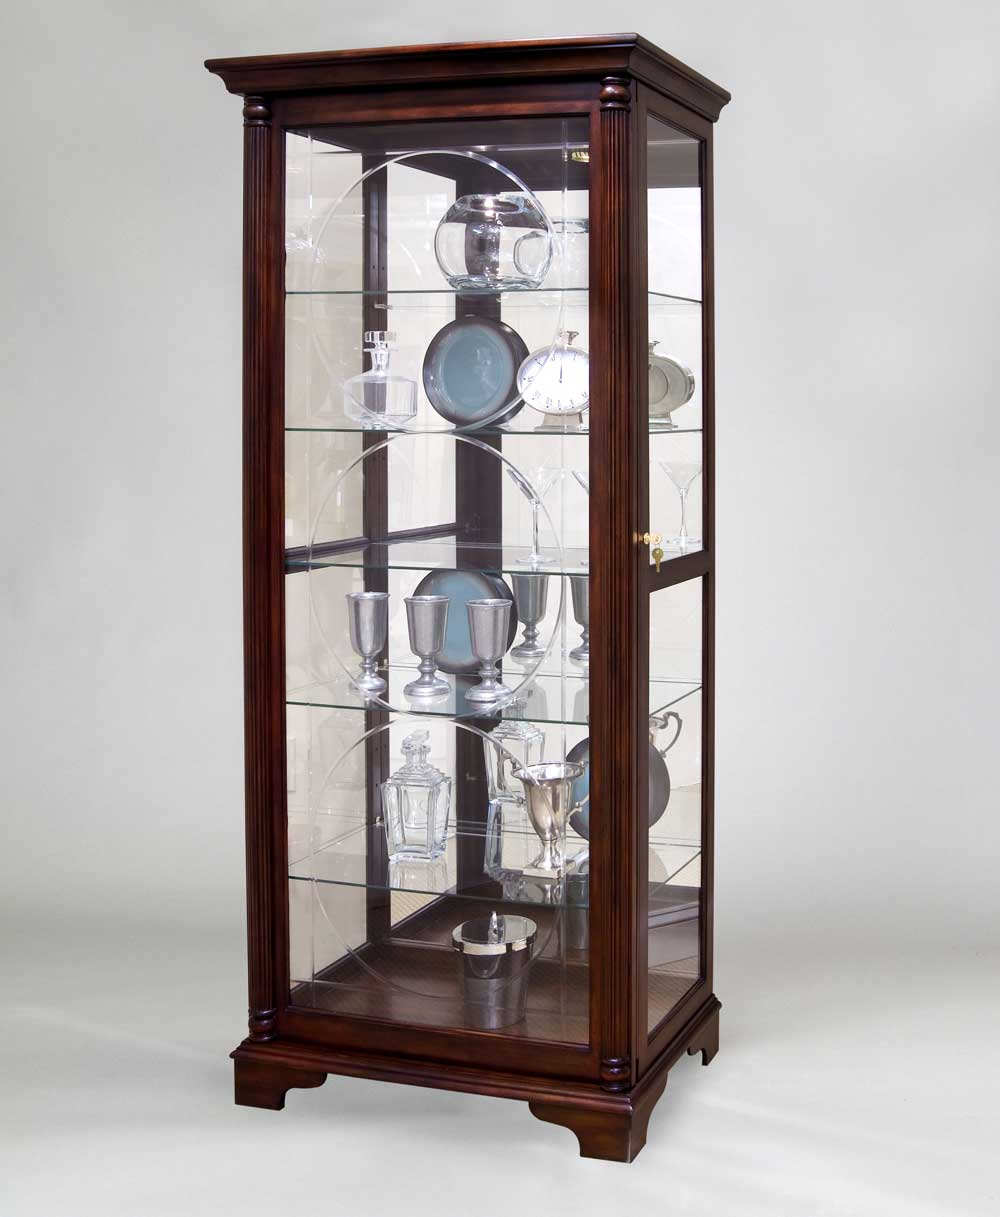 You could also use a full standing curio cabinet like this: